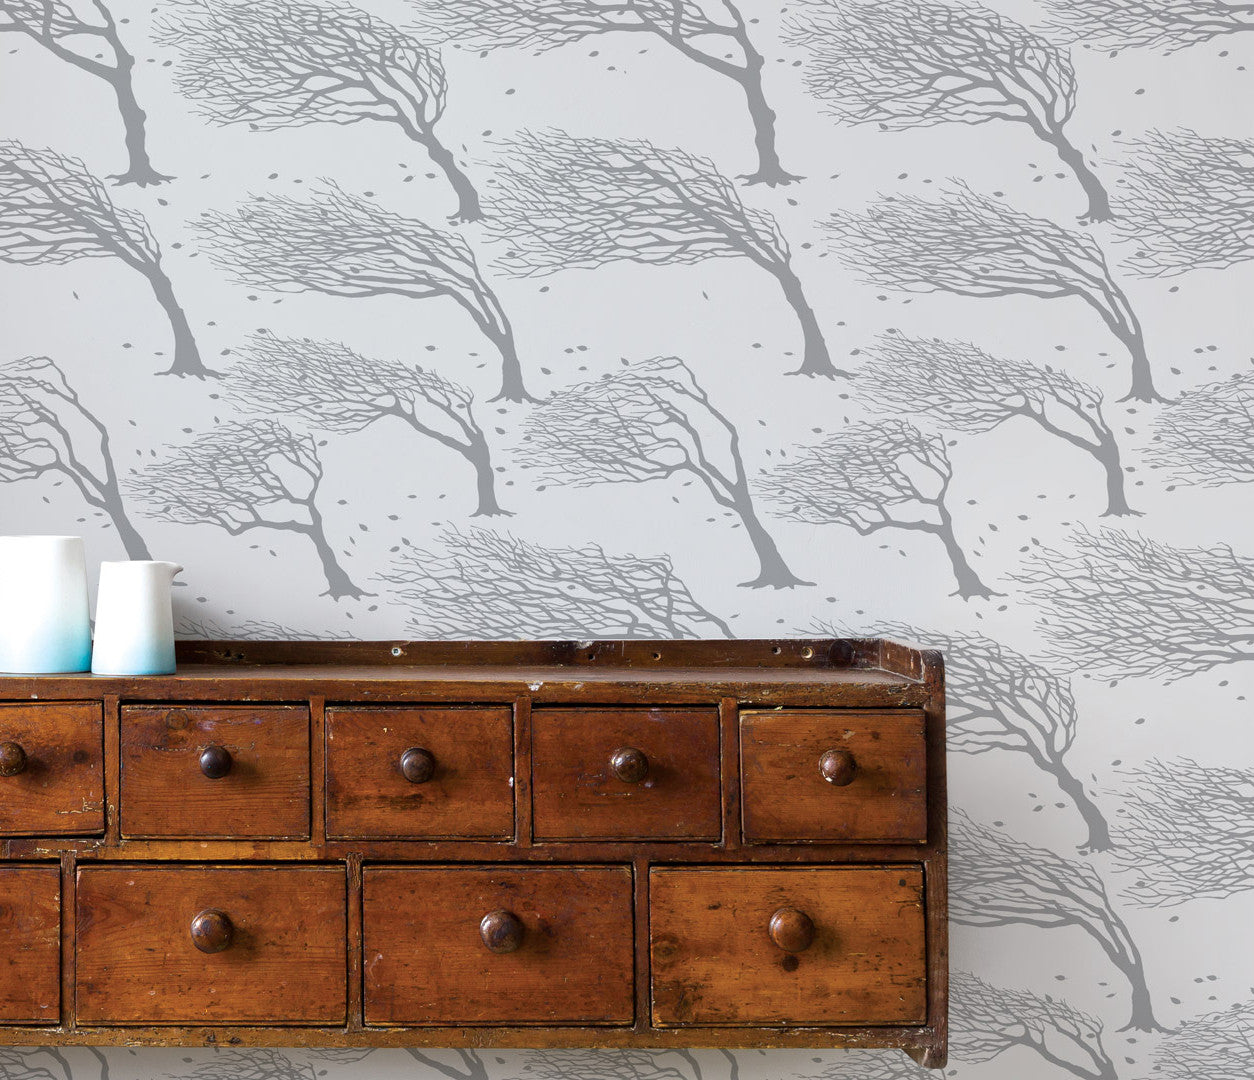 Pictures and Wall Art, Screen Printed Wind Swept Trees Wallpaper in Soft Grey